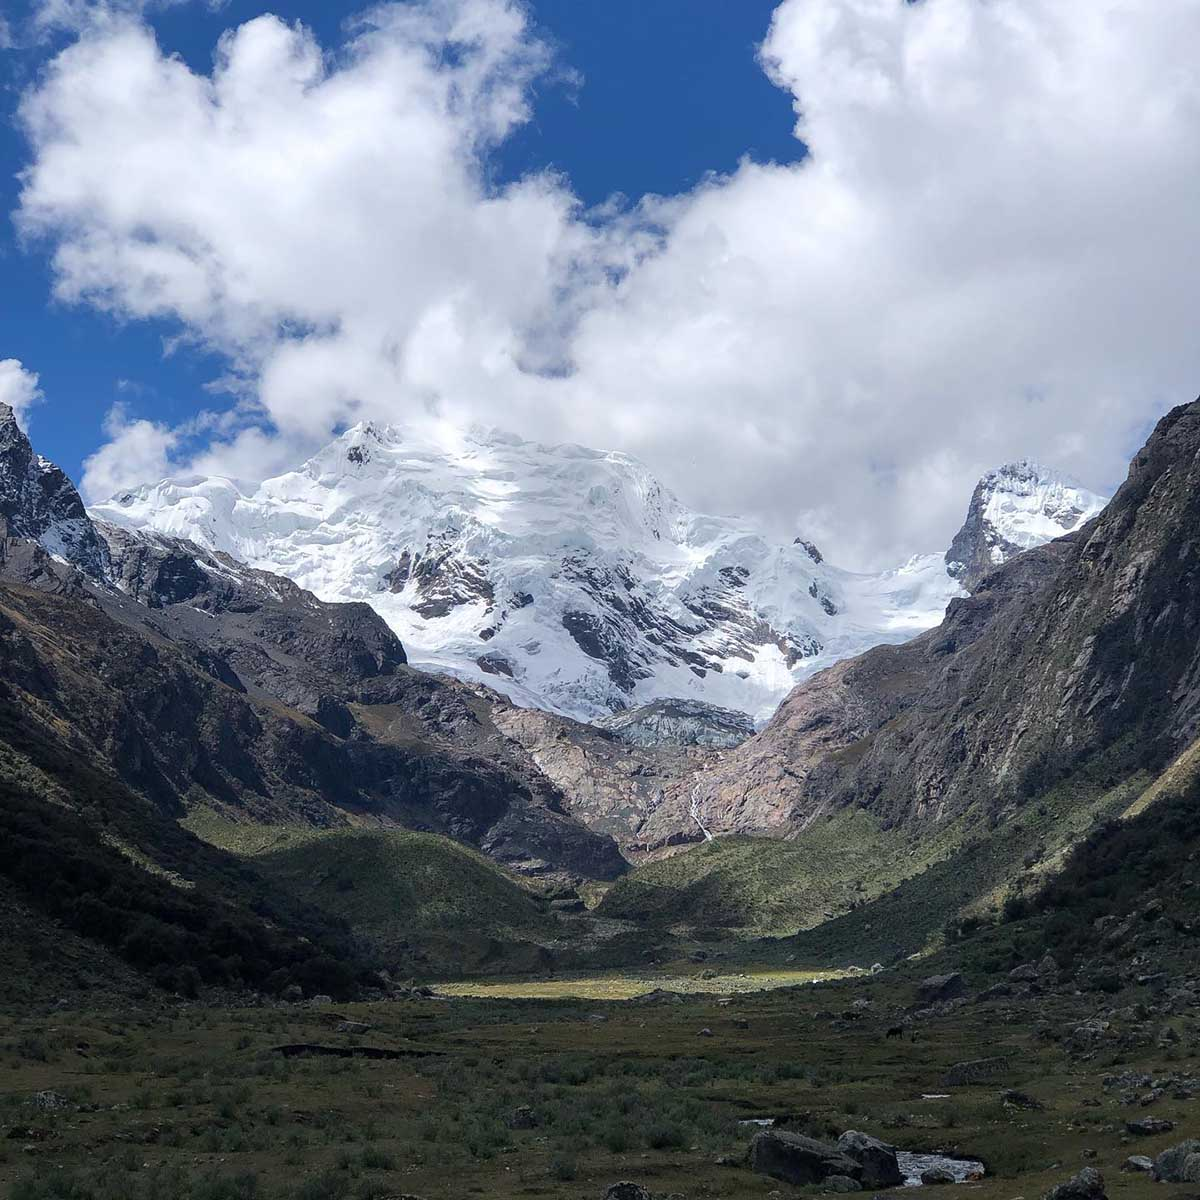 Clouds partially cover snowcapped mountains in huascaran national park, Peru.